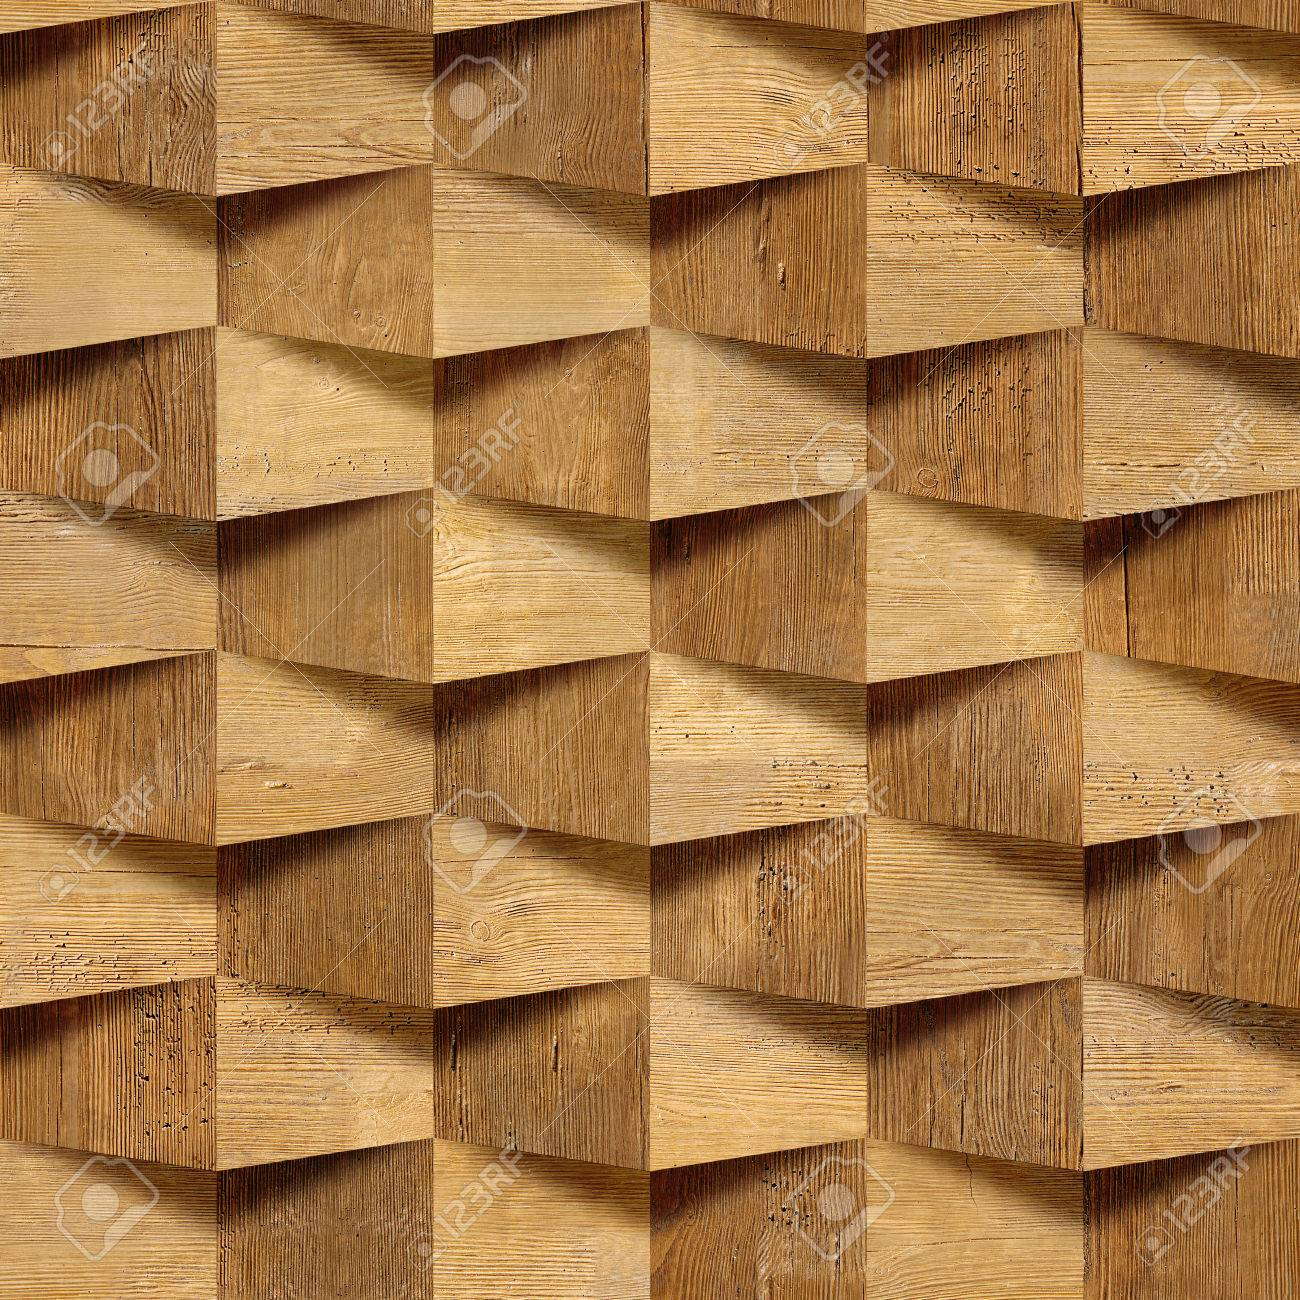 Wall Of The Brick, Wooden Wallpaper Decorative Texture, Wall Decorative  Tiles, Interior Wallpaper